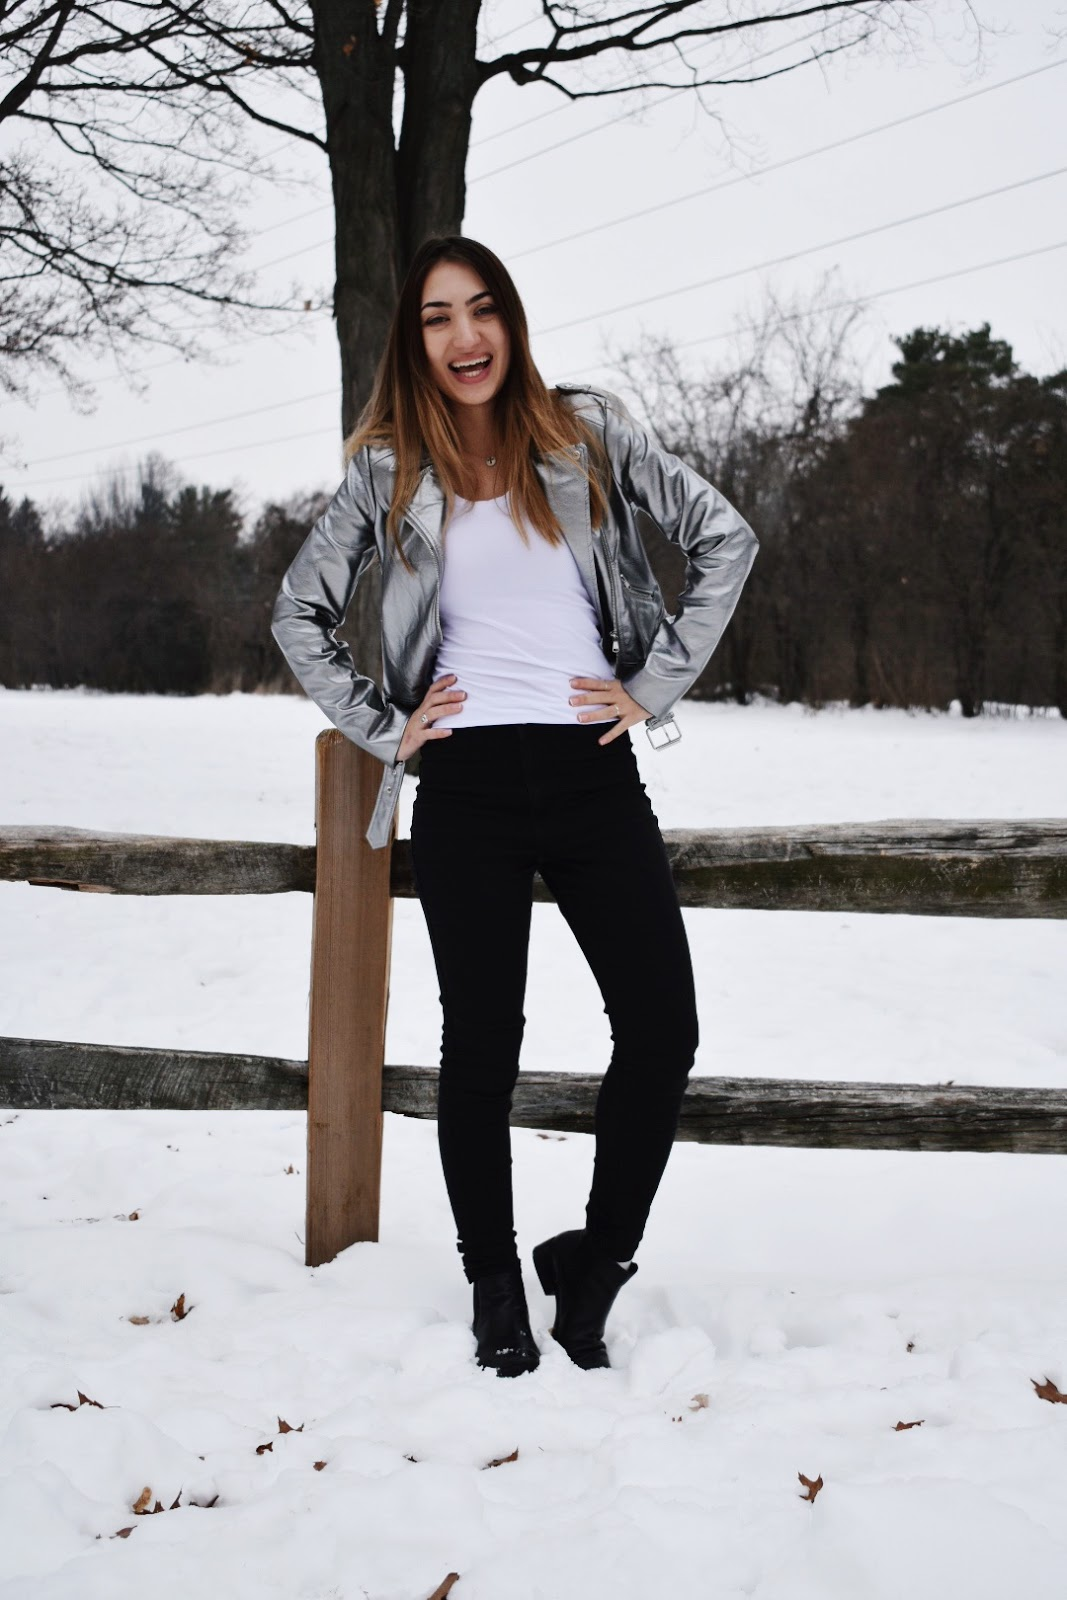 The Metallic Moto Jacket for Wintertime